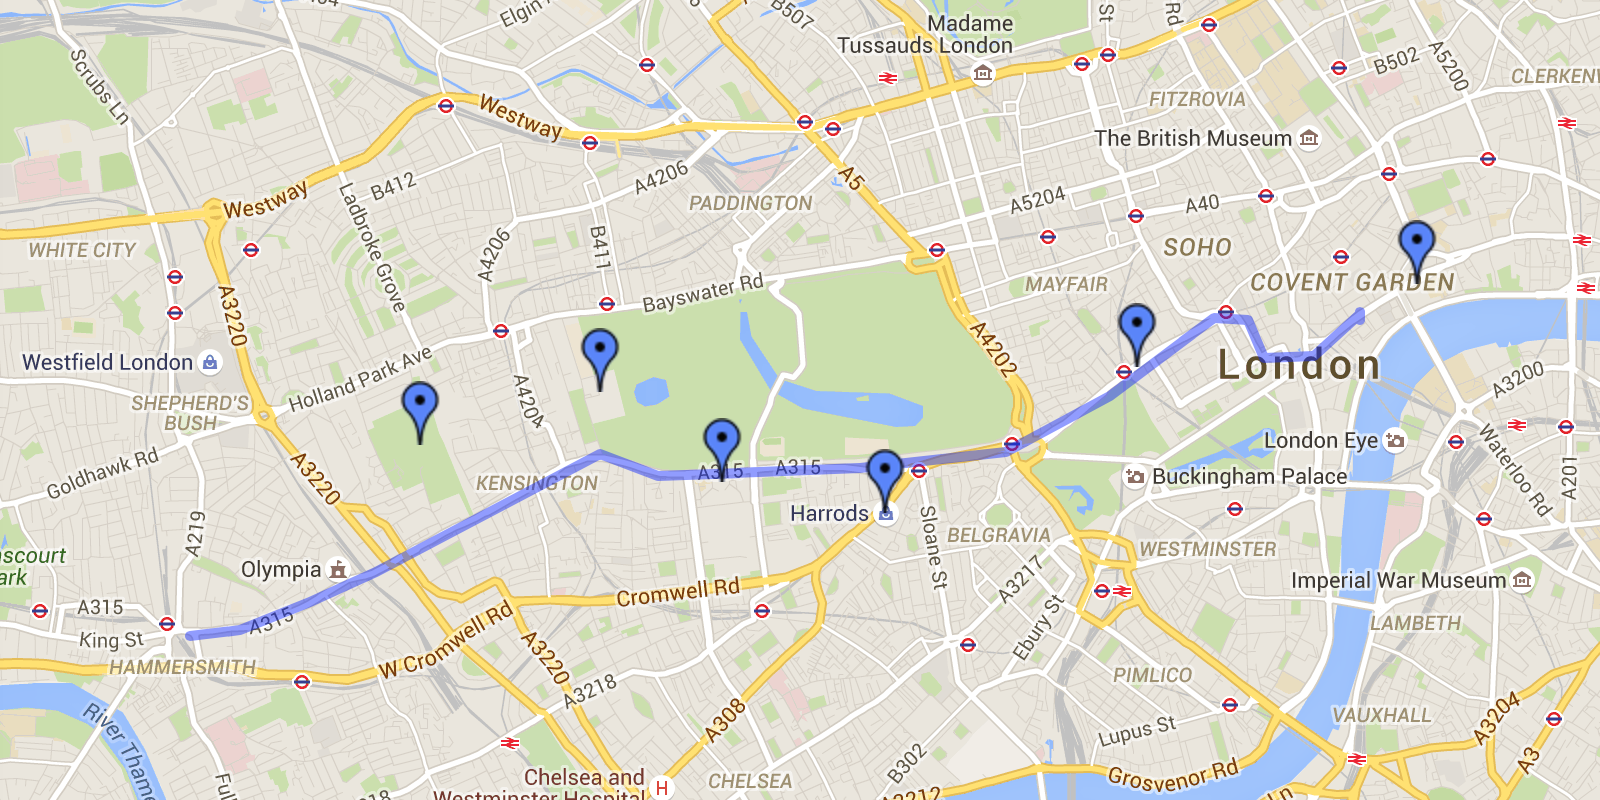 Bus Route 9 from Aldwych to Hammersmith